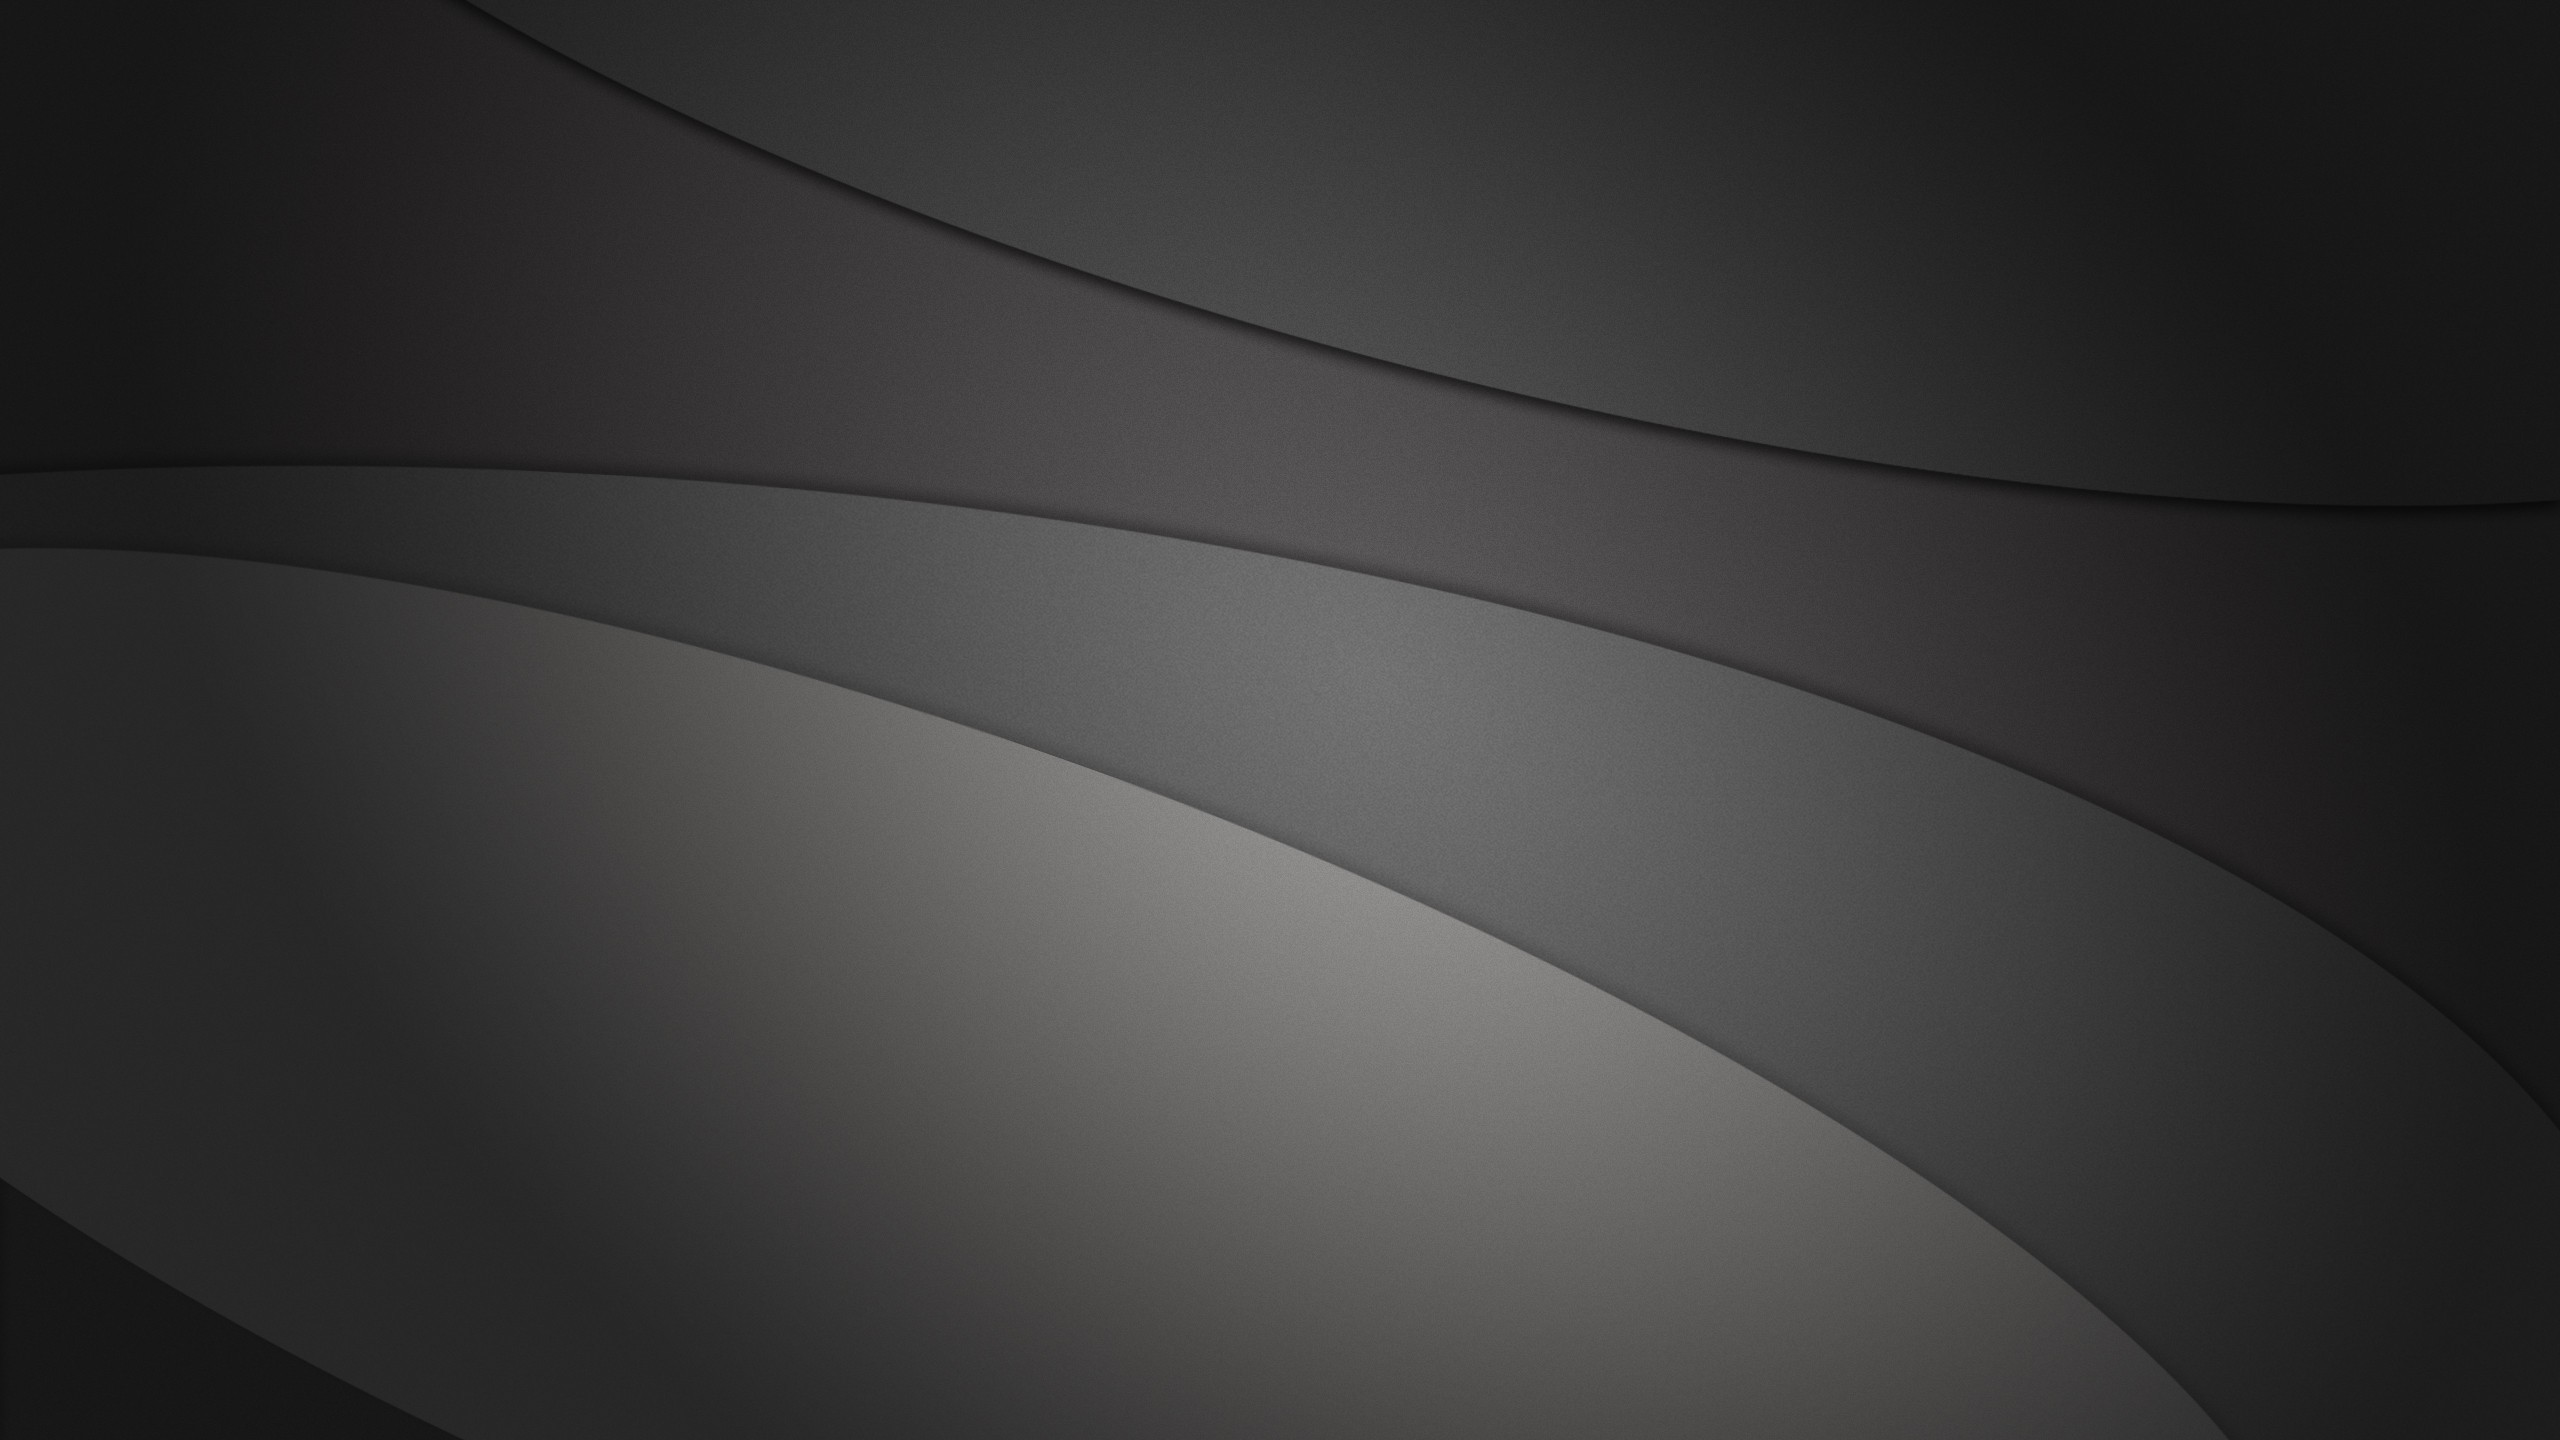 Keywords Abstract Background Grey and Tags 2560x1440